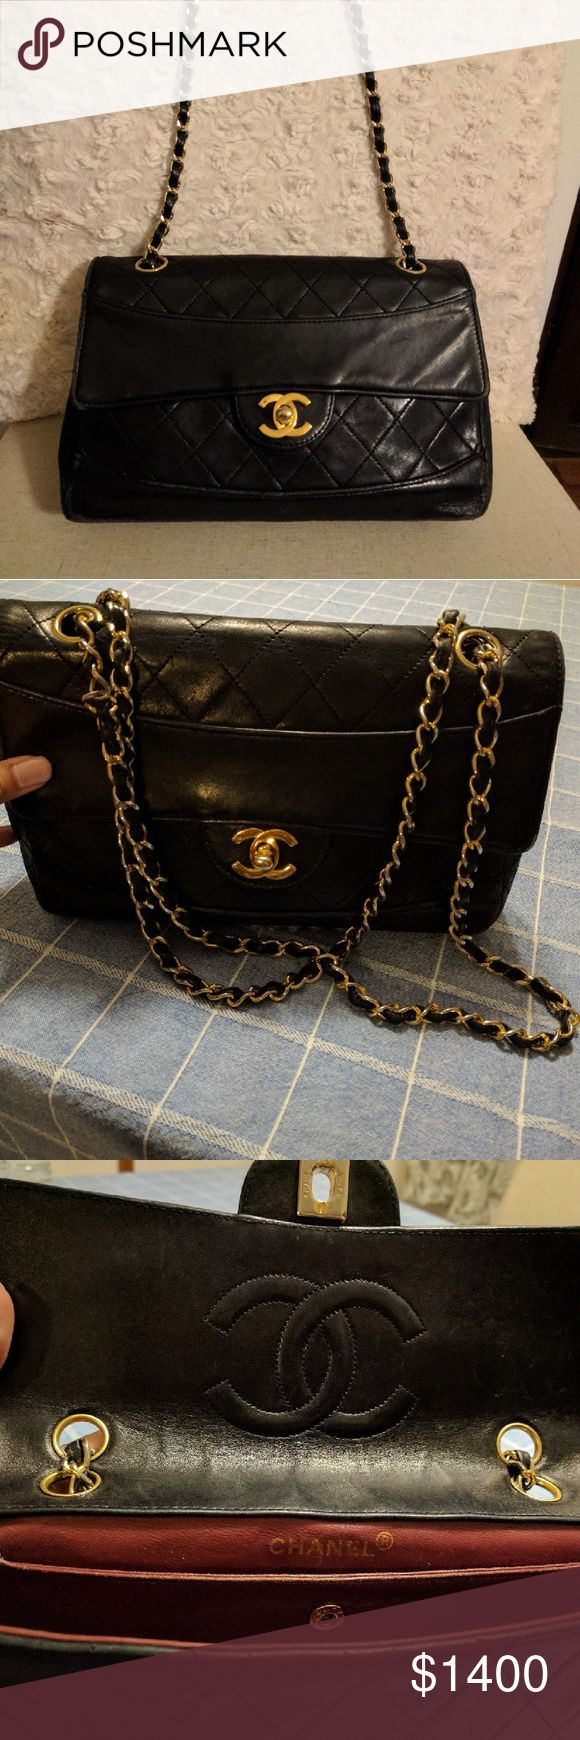 Chanel Bag single flap chain vintage authentic Vintage bag, Chanel, Authentic with authenticity card, hologram sticker inside intact, has wear and tear CHANEL Bags Shoulder Bags